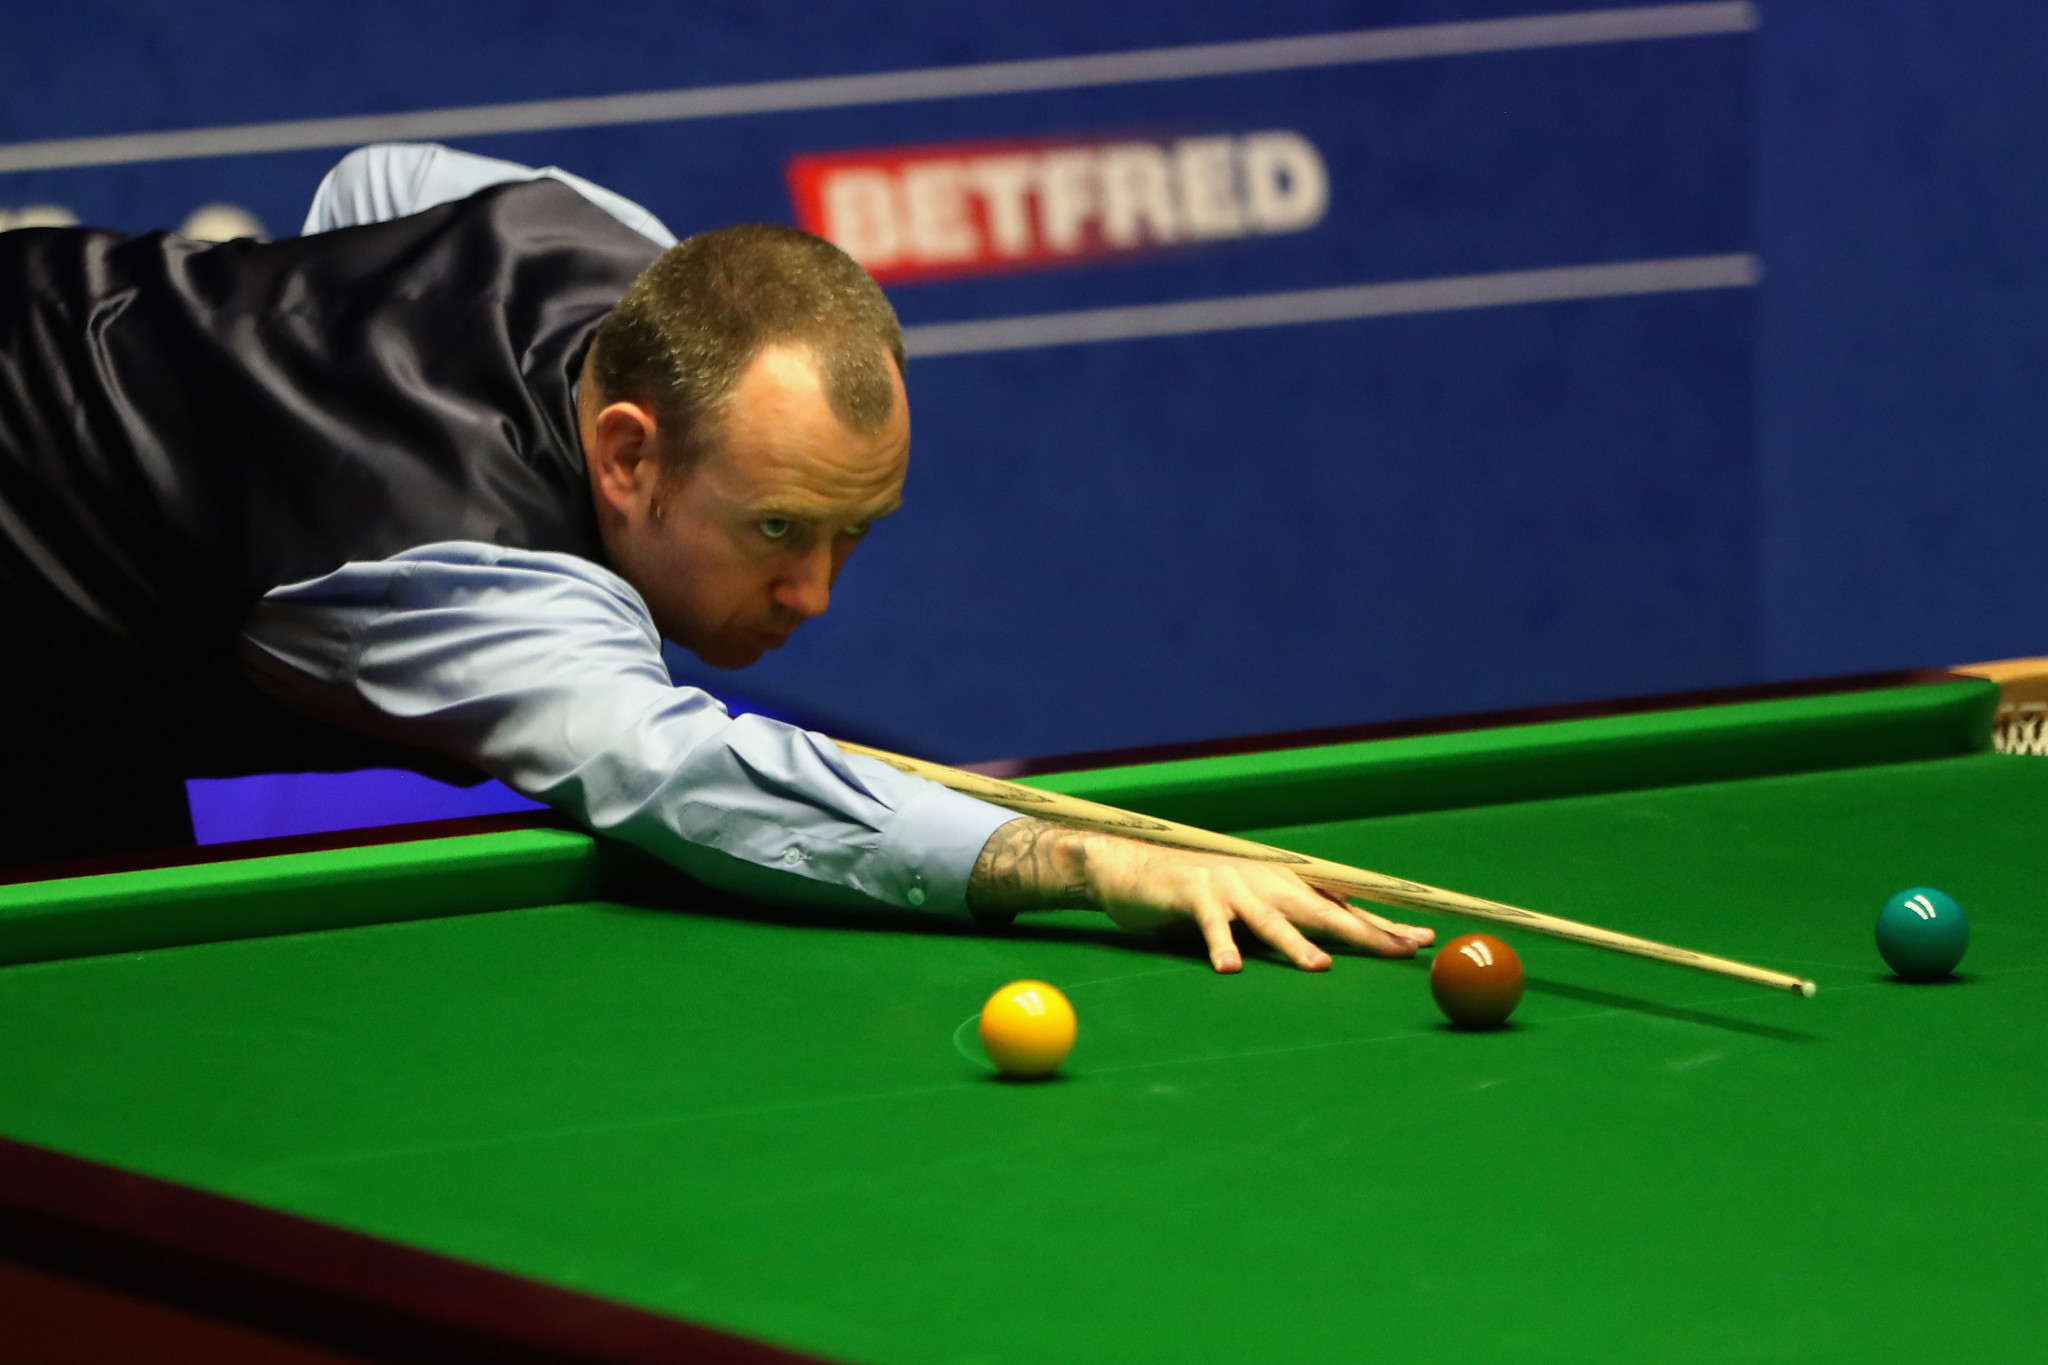 Reigning champion Williams in hospital with chest pains after opening session of second-round World Snooker Championship match